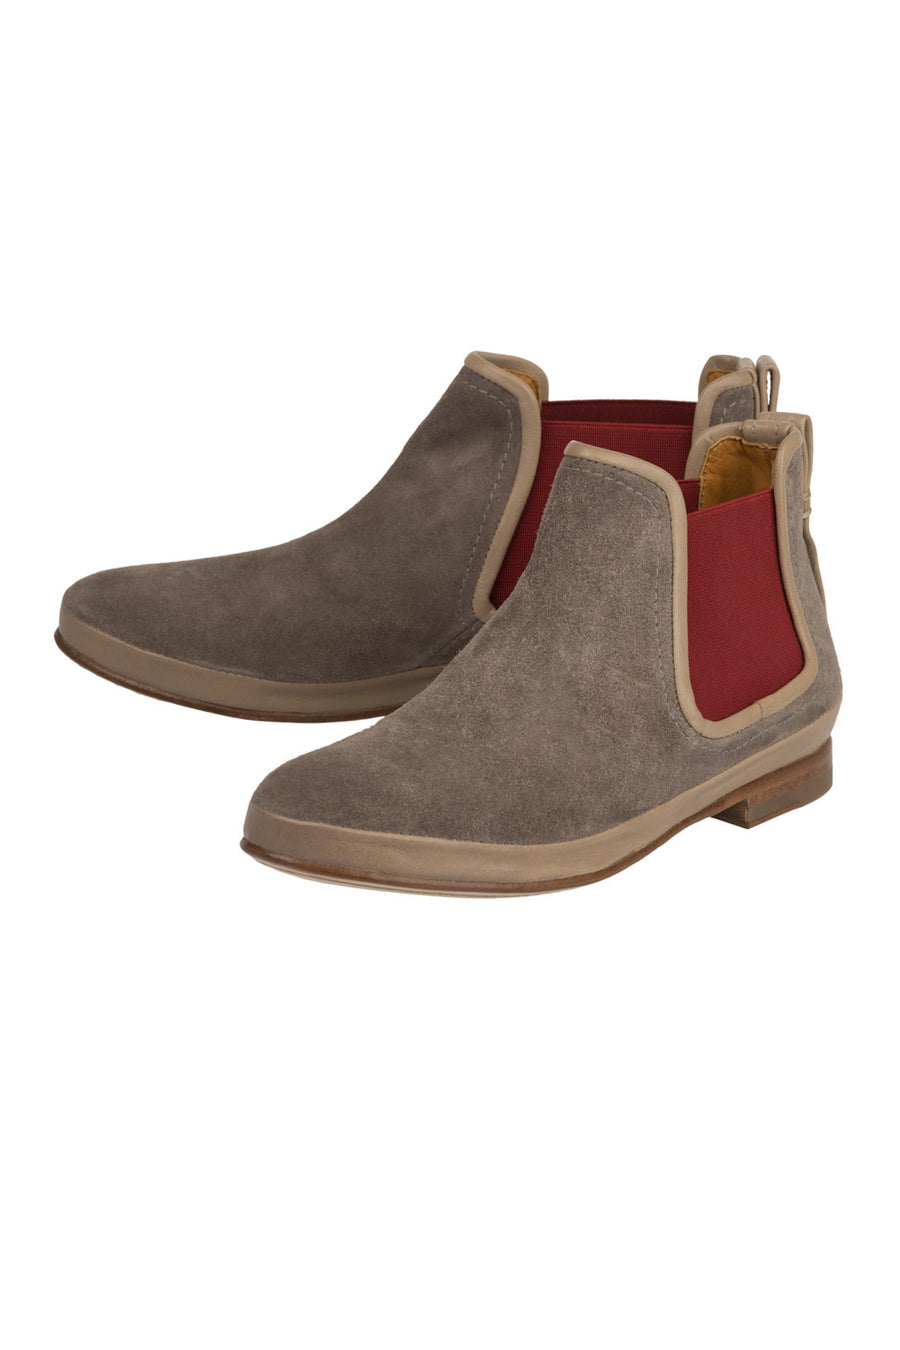 Women Grey Chelsea Low Boots Francois Jour Ferie Paris - Jour Ferie Paris